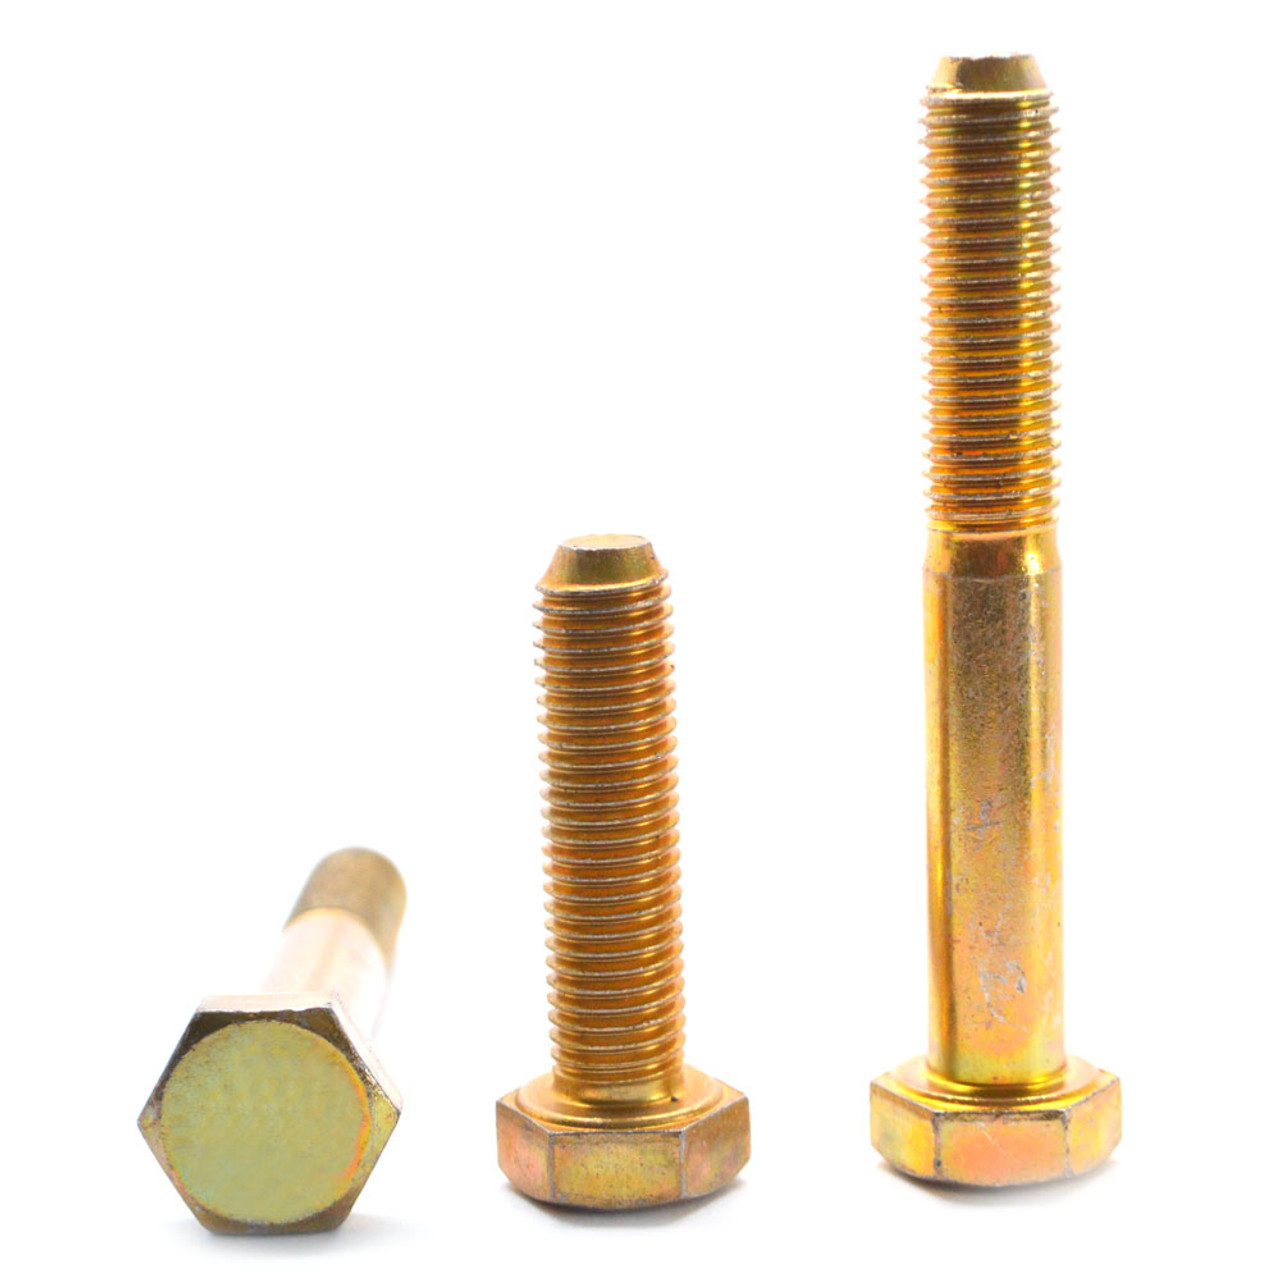 Hex Head 5//8-11 x 8 Grade 8 Bolts Yellow Zinc Cap Screws 8